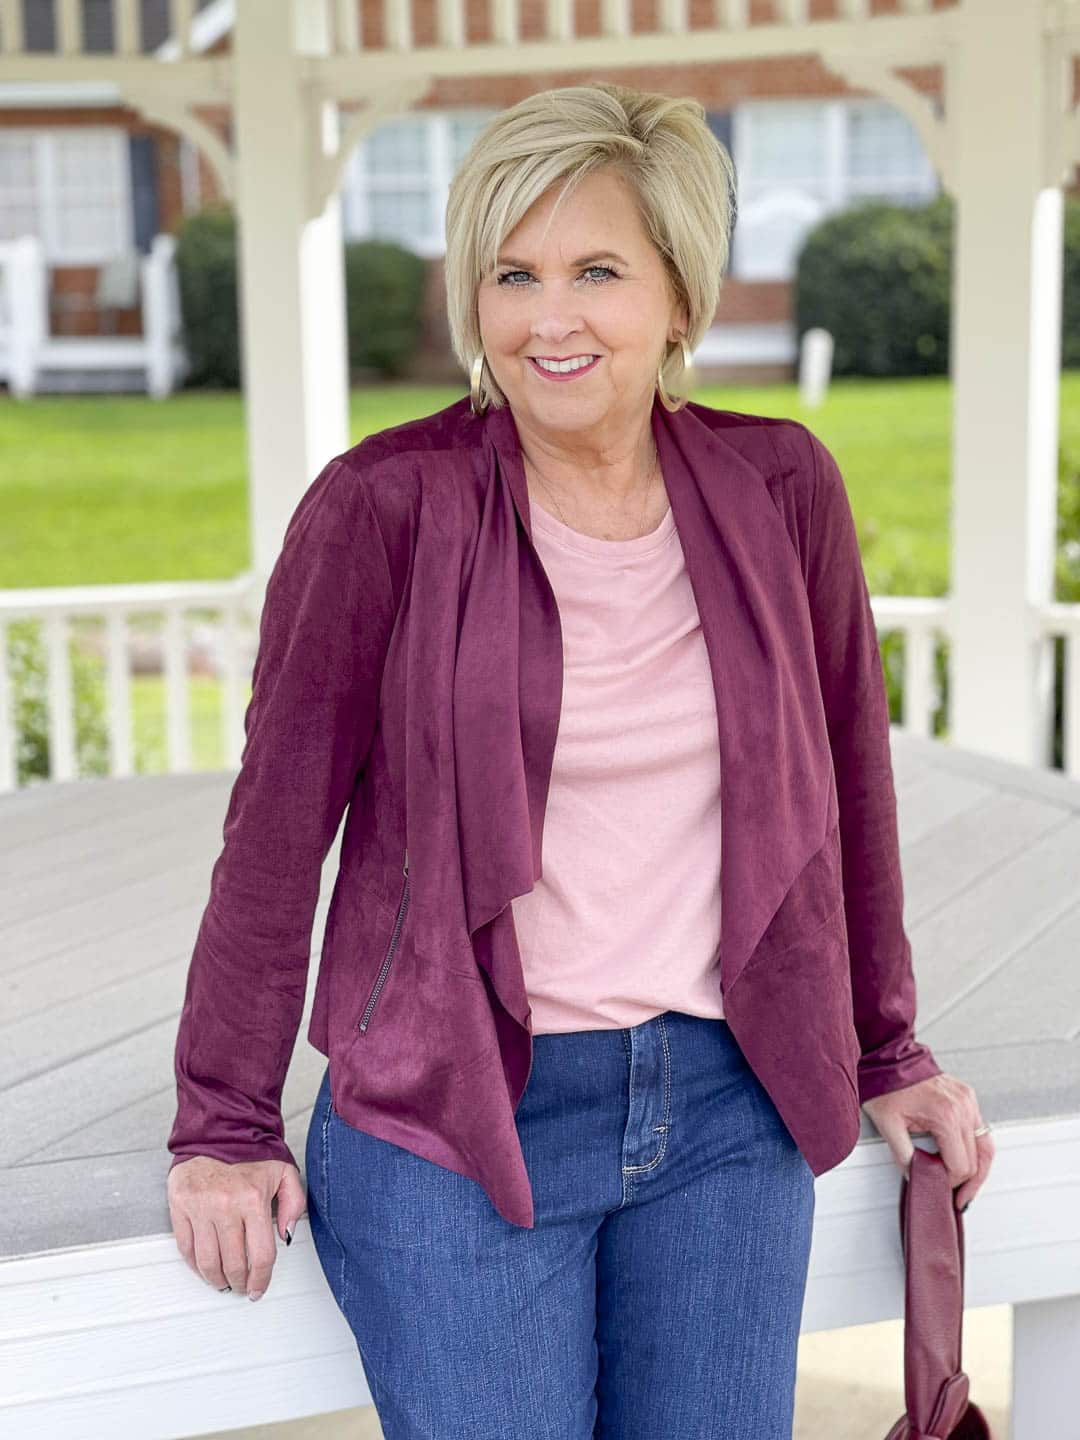 Over 40 Fashion Blogger, Tania Stephens, is showing her recent Walmart haul including this plum moto jacket and pink tee